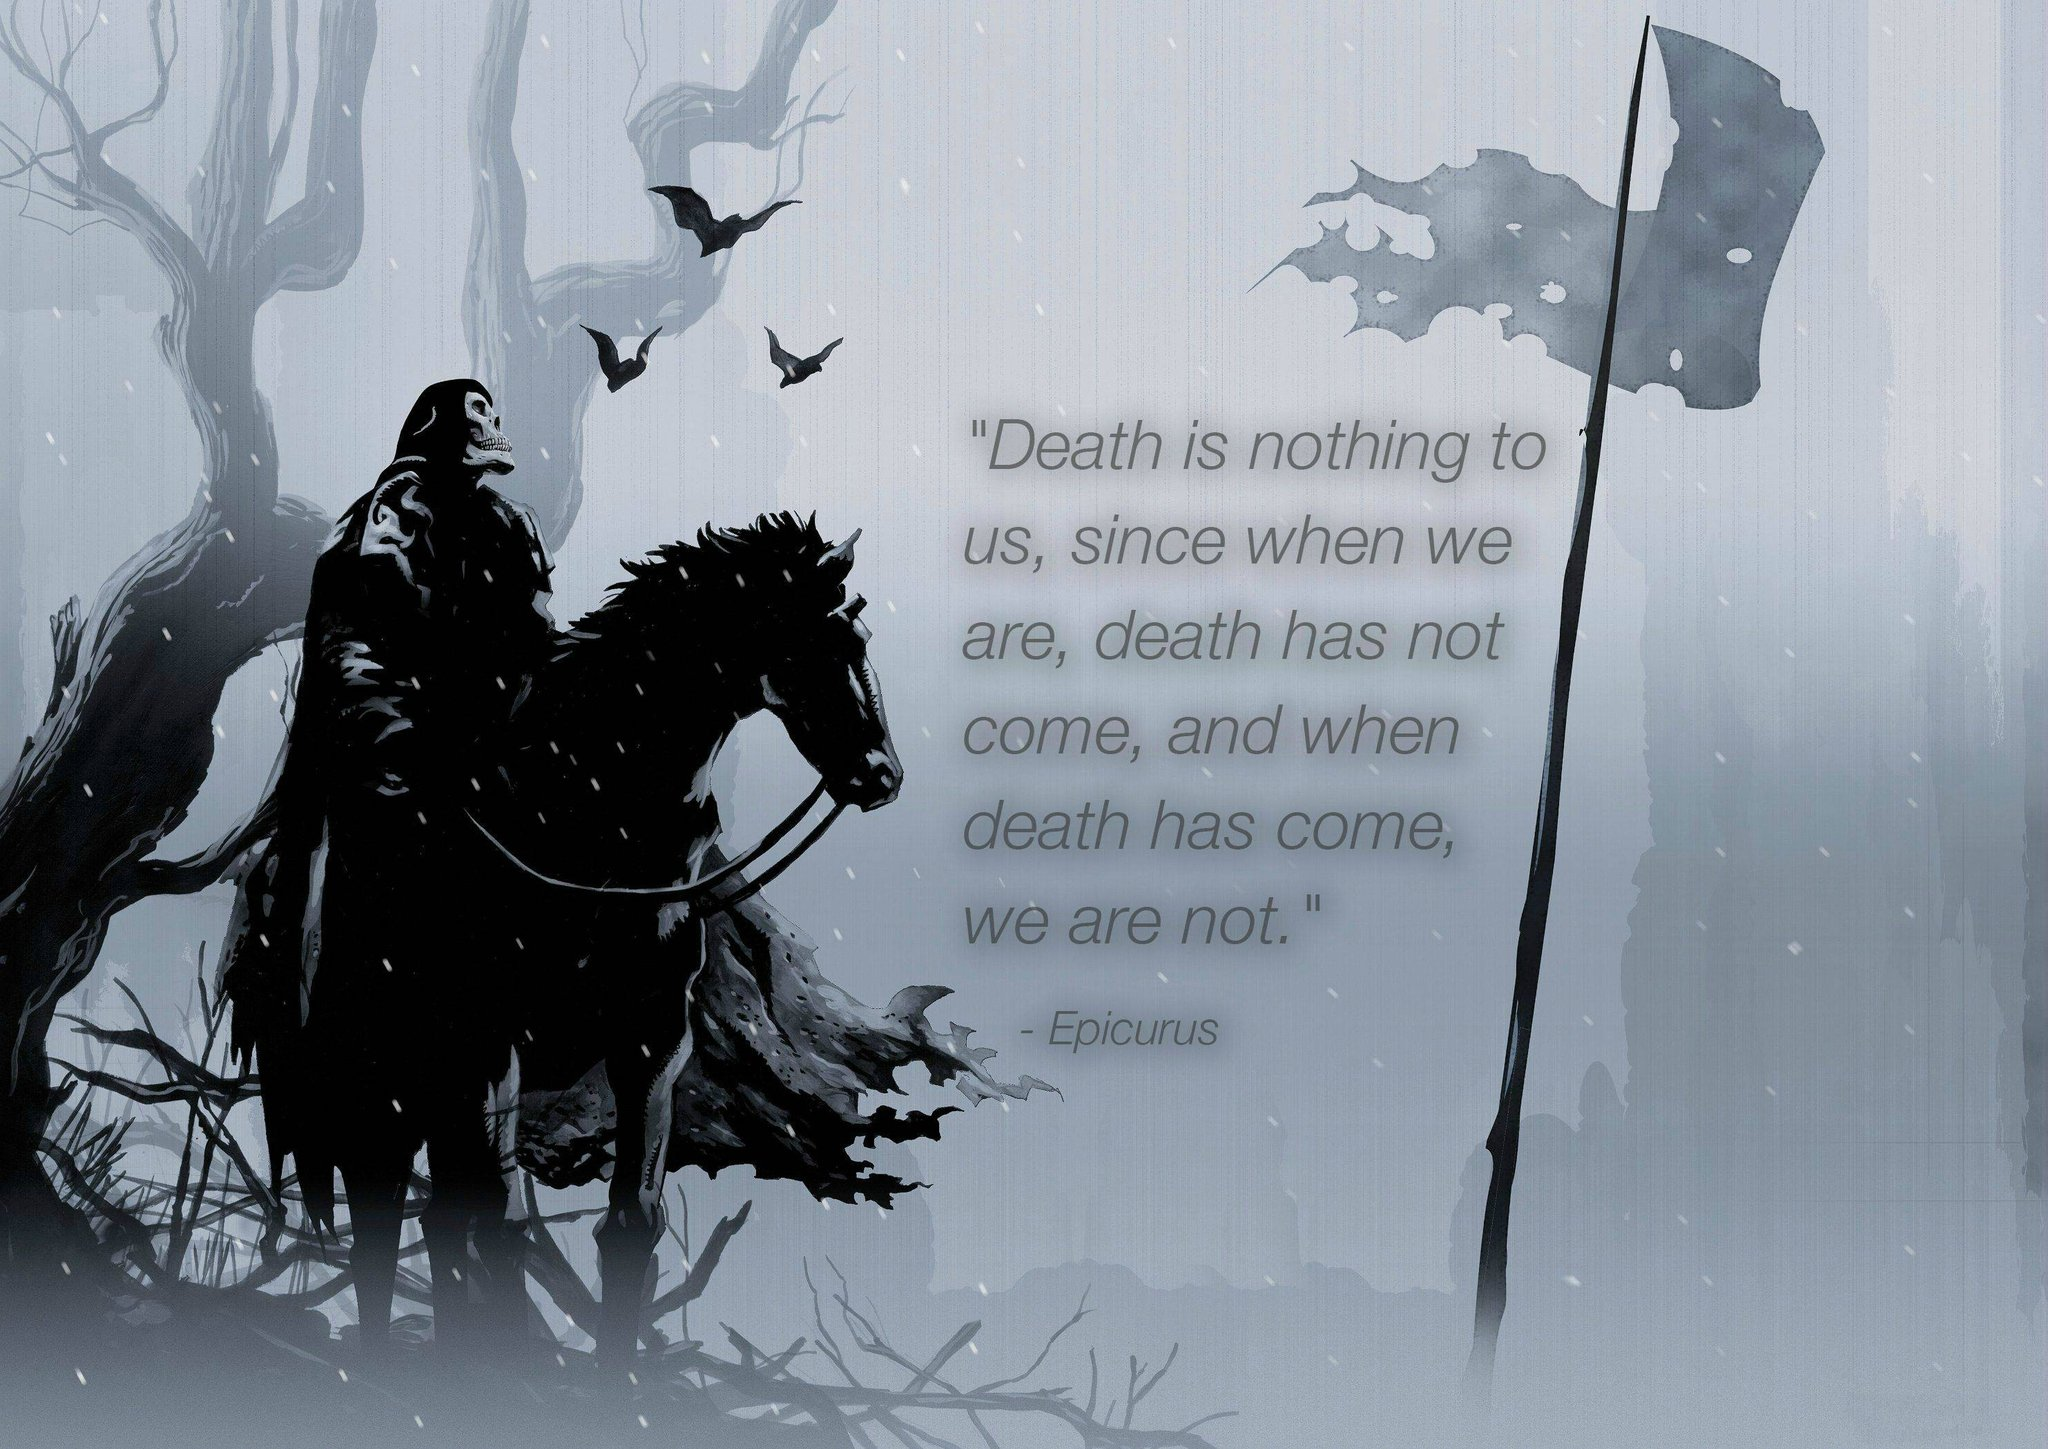 Death Is Nothing To Us Epicurus Daily Quotes Sayings Pictures